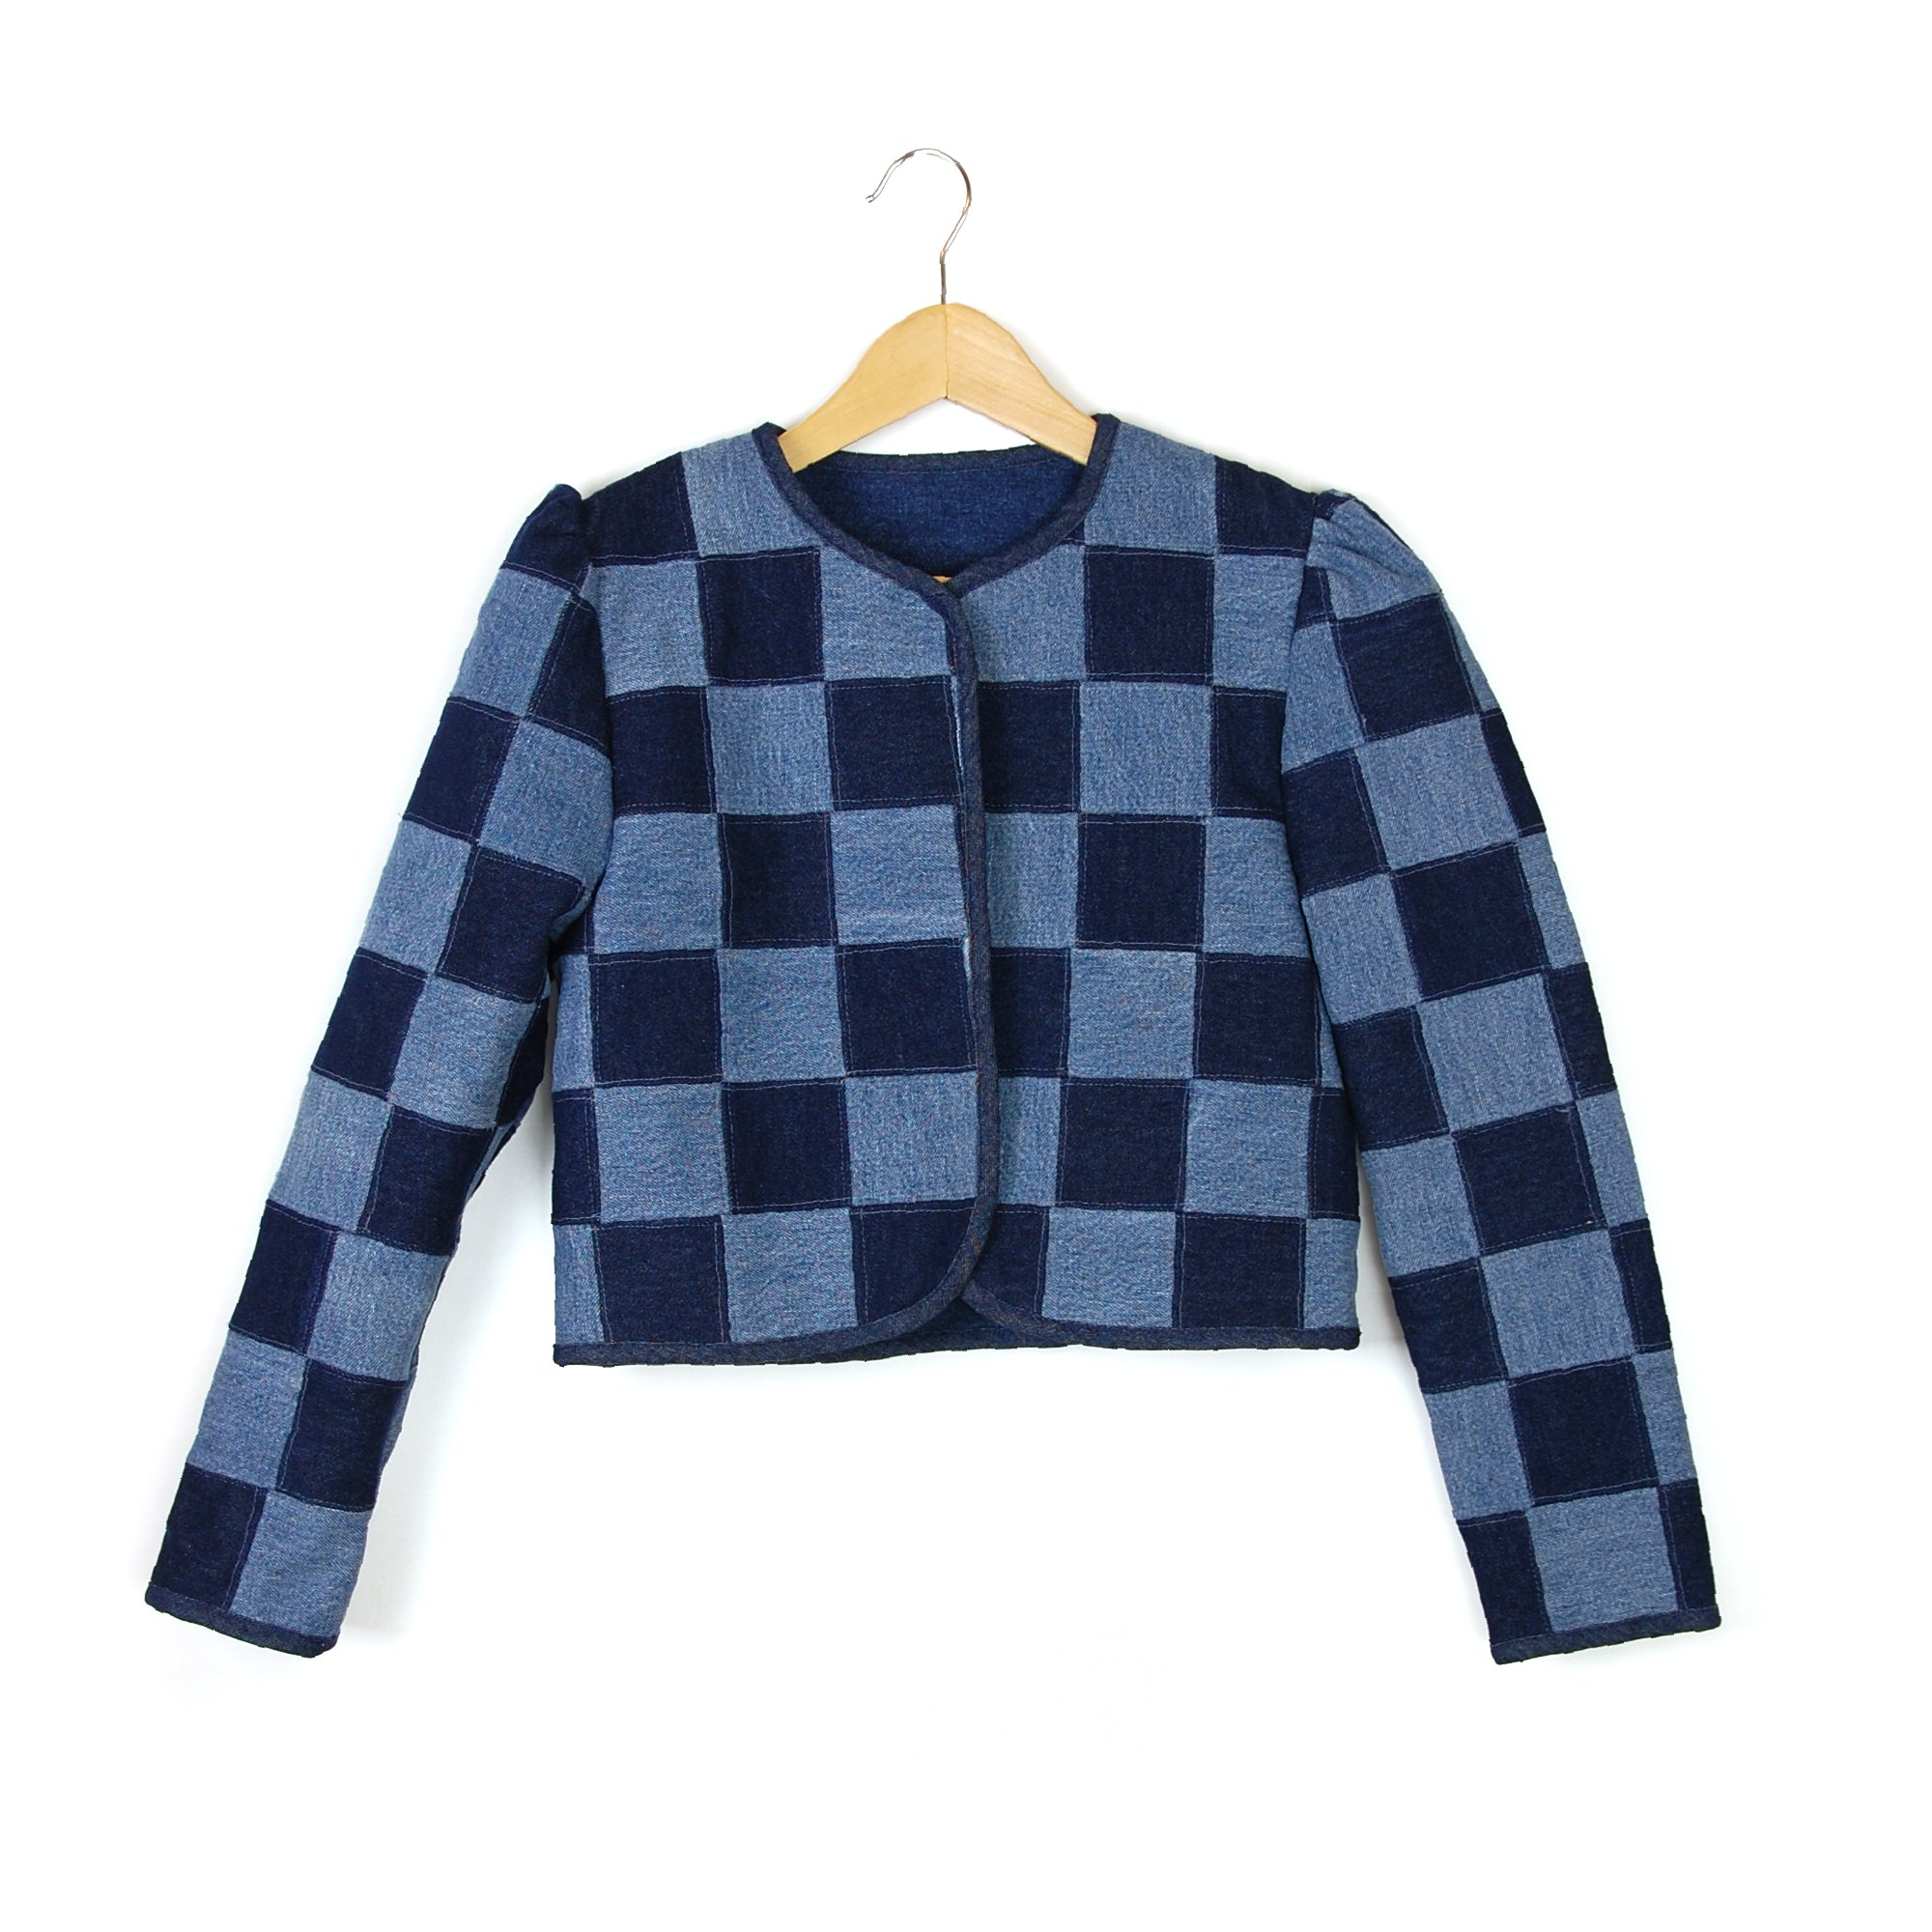 LITTLE CHECK ENERGY 1 PATCHWORK JACKET - Late to the Party